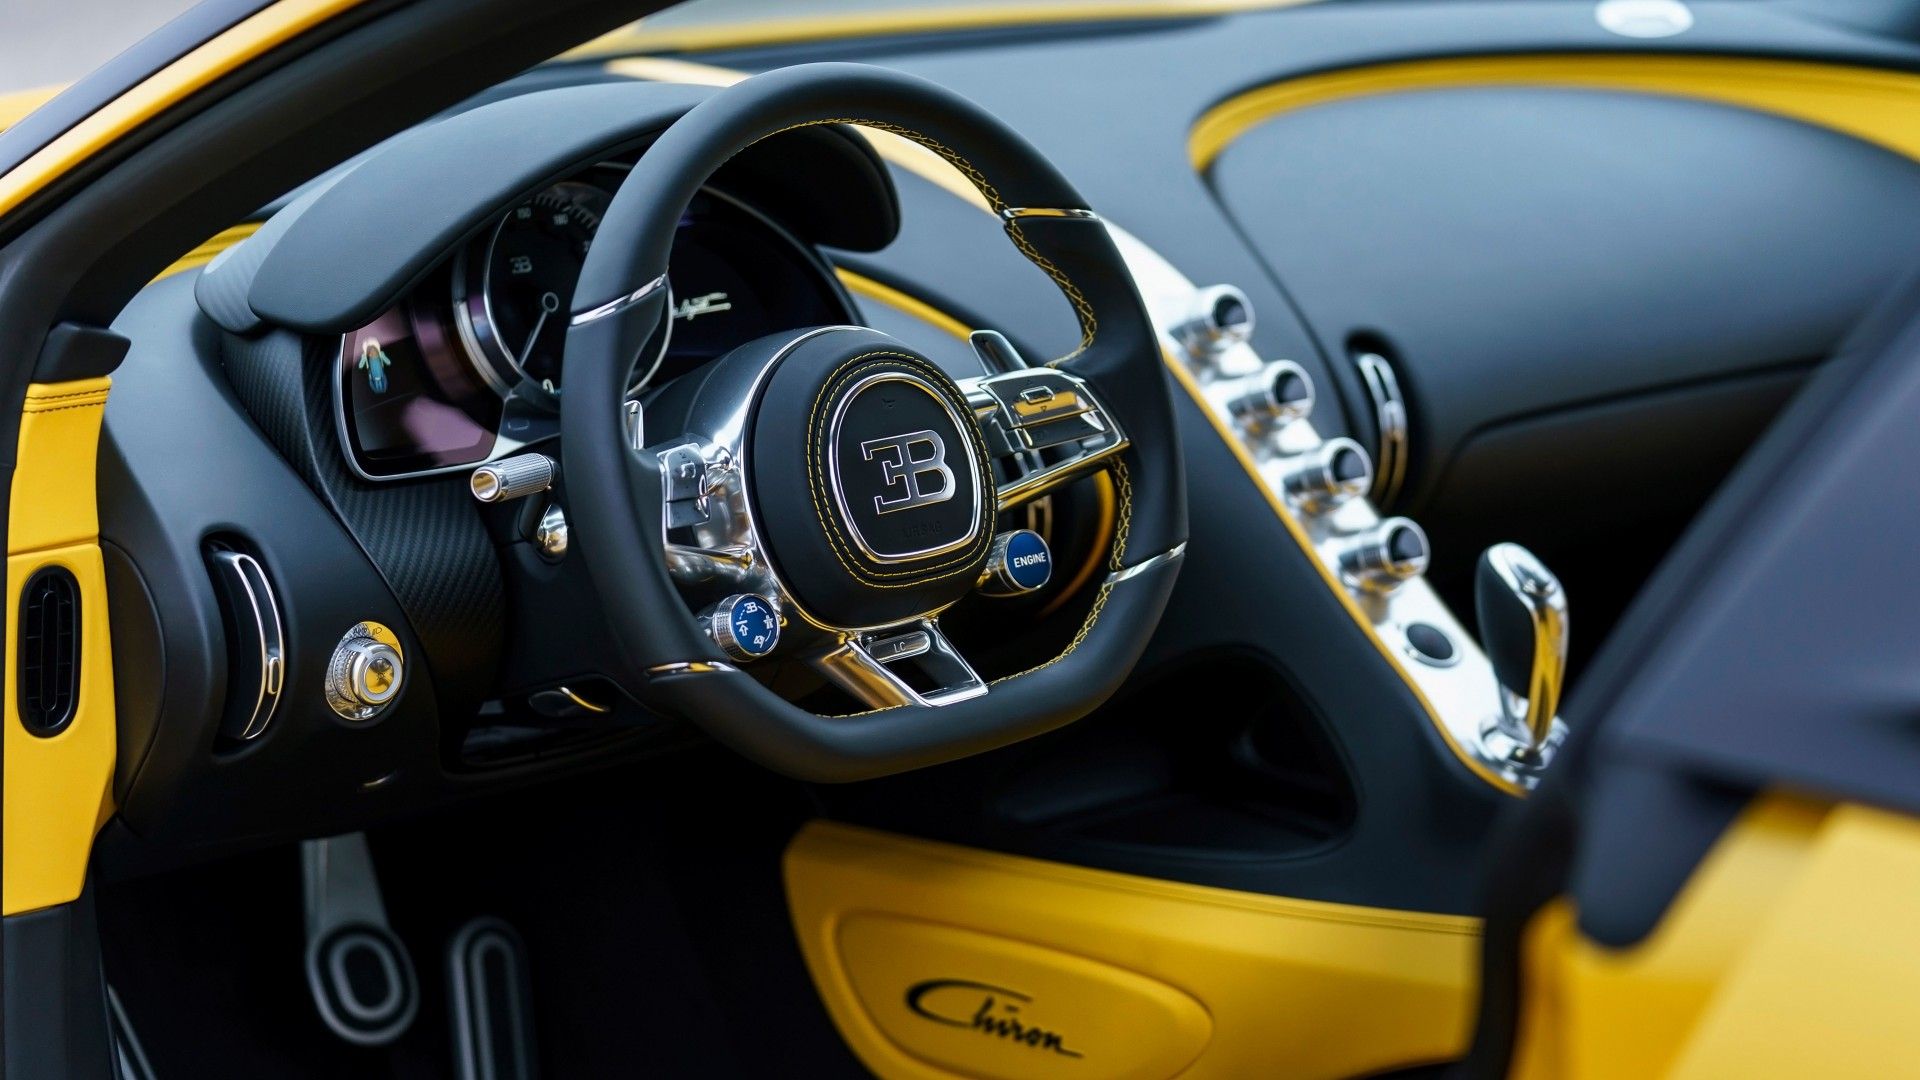 2018 bugatti chiron yellow and black interior wallpaper hd car wallpapers id 8852. Black Bedroom Furniture Sets. Home Design Ideas